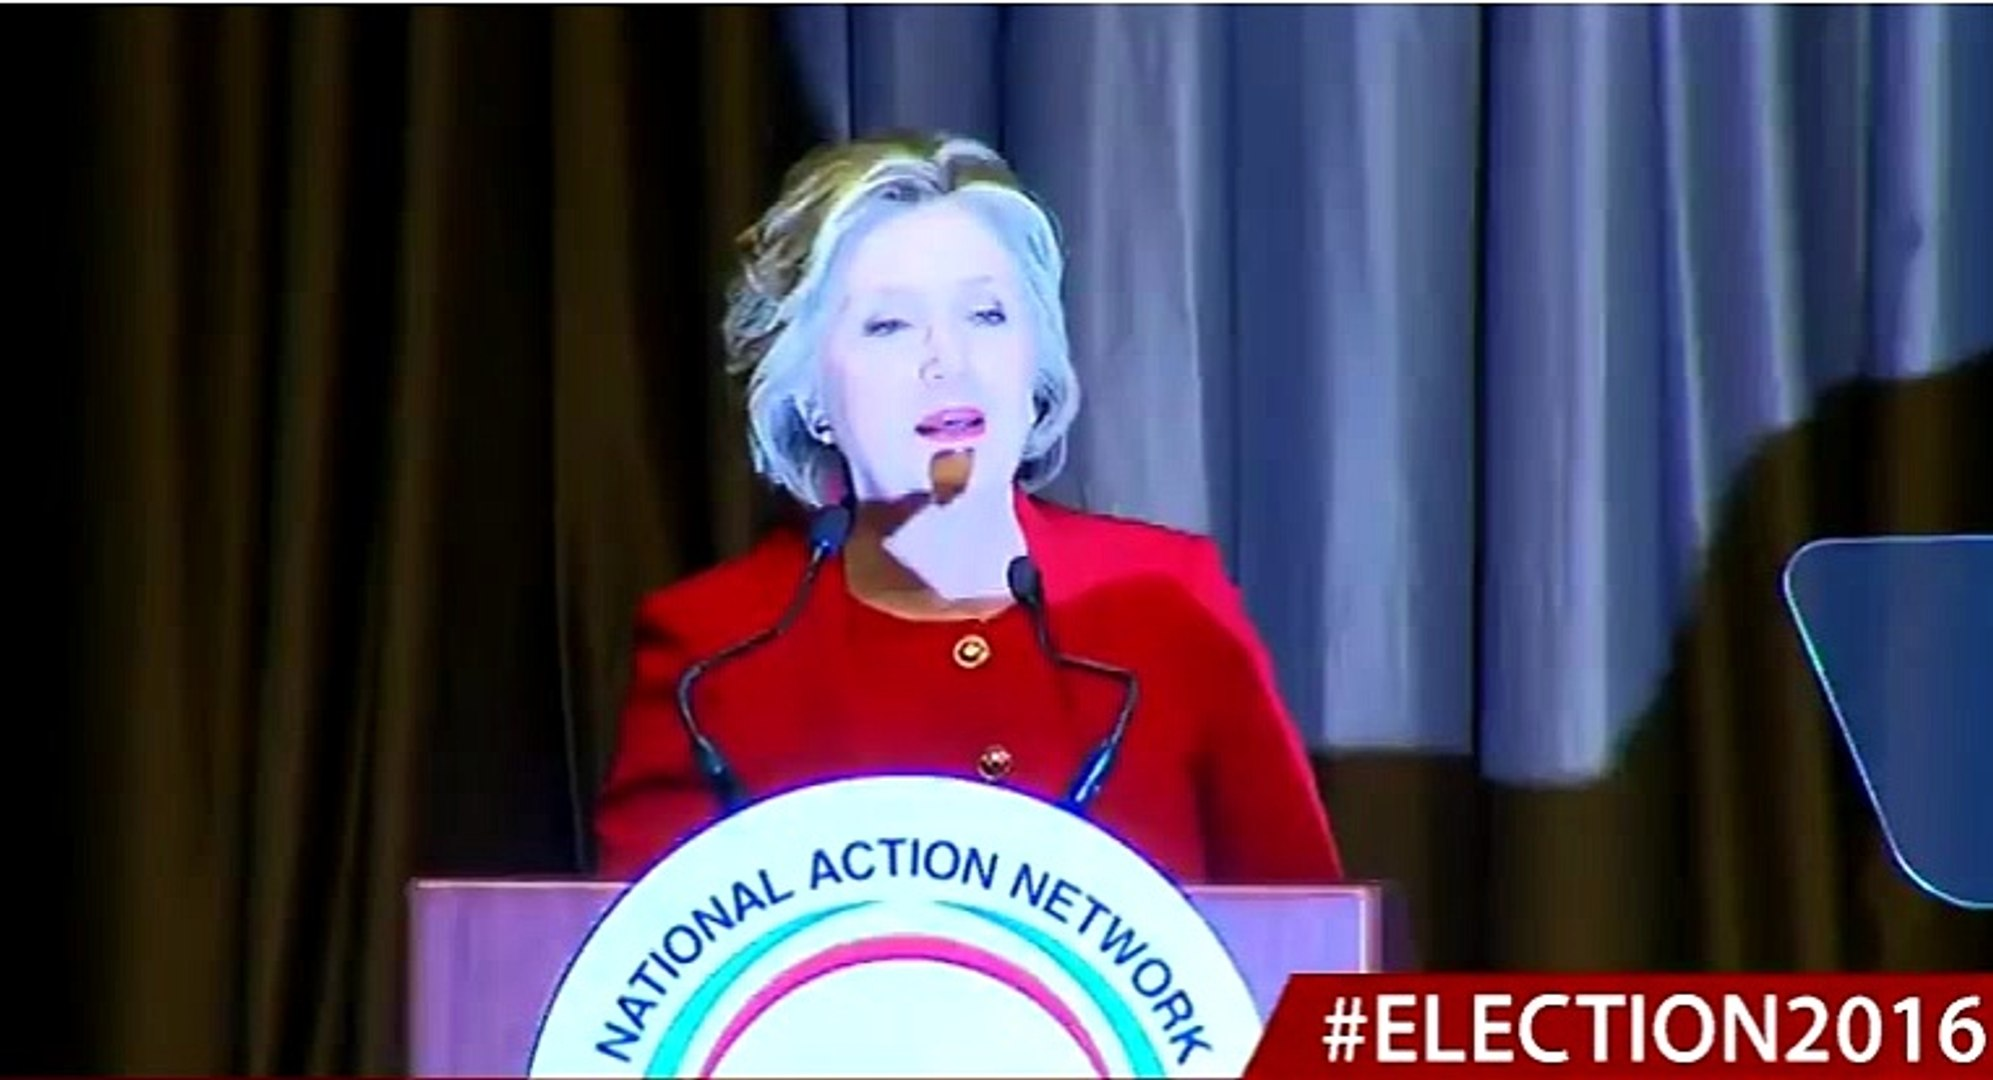 Hillary Clinton - White People Need to Listen to Black People